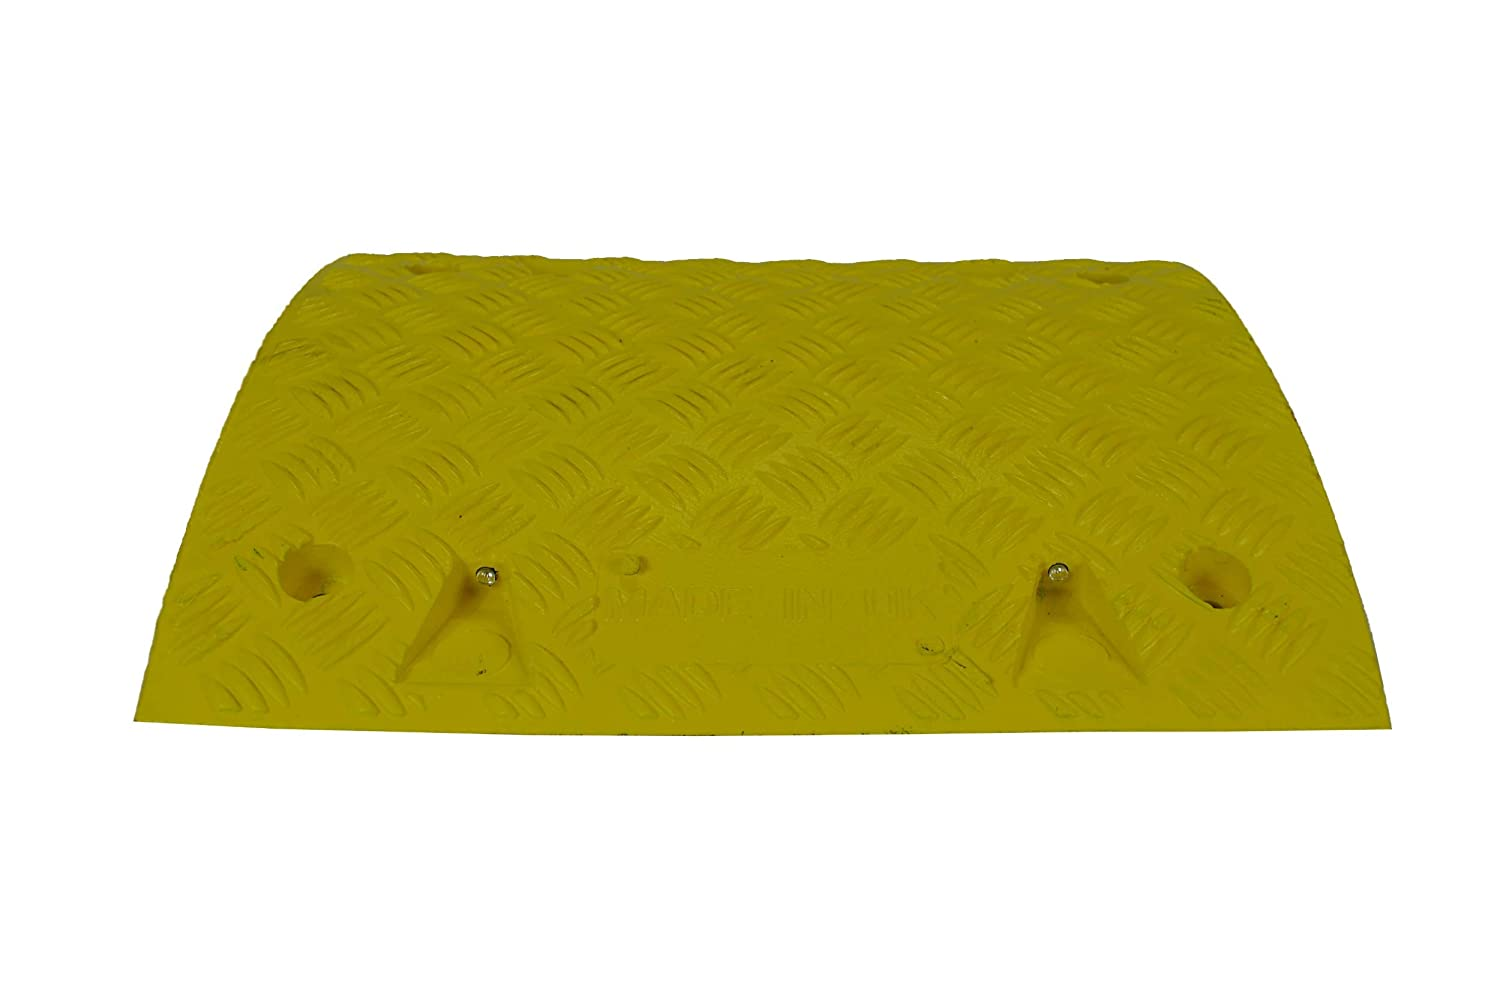 Speed Bump 50mm /& 75mm Sections Brand New Sleeping Policeman Car Ramps Heavy Duty Speed Ramp Mid Sections in YELLOW